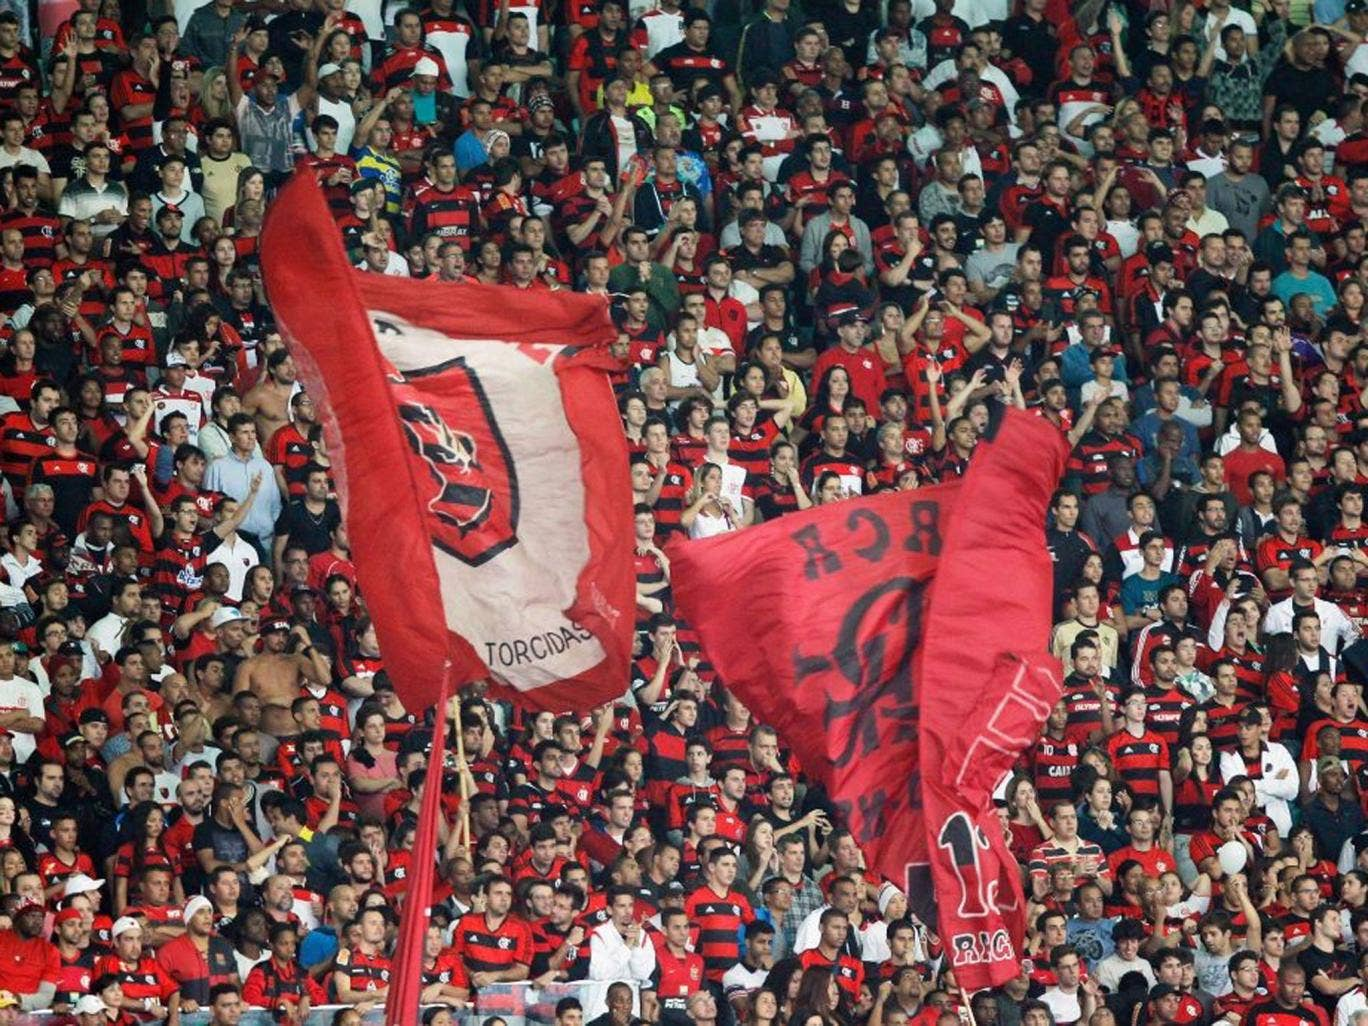 Flag of convenience: Supporters of Flamengo brandish their 'torcidas' banners for the match against Botafogo at the Maracana last week